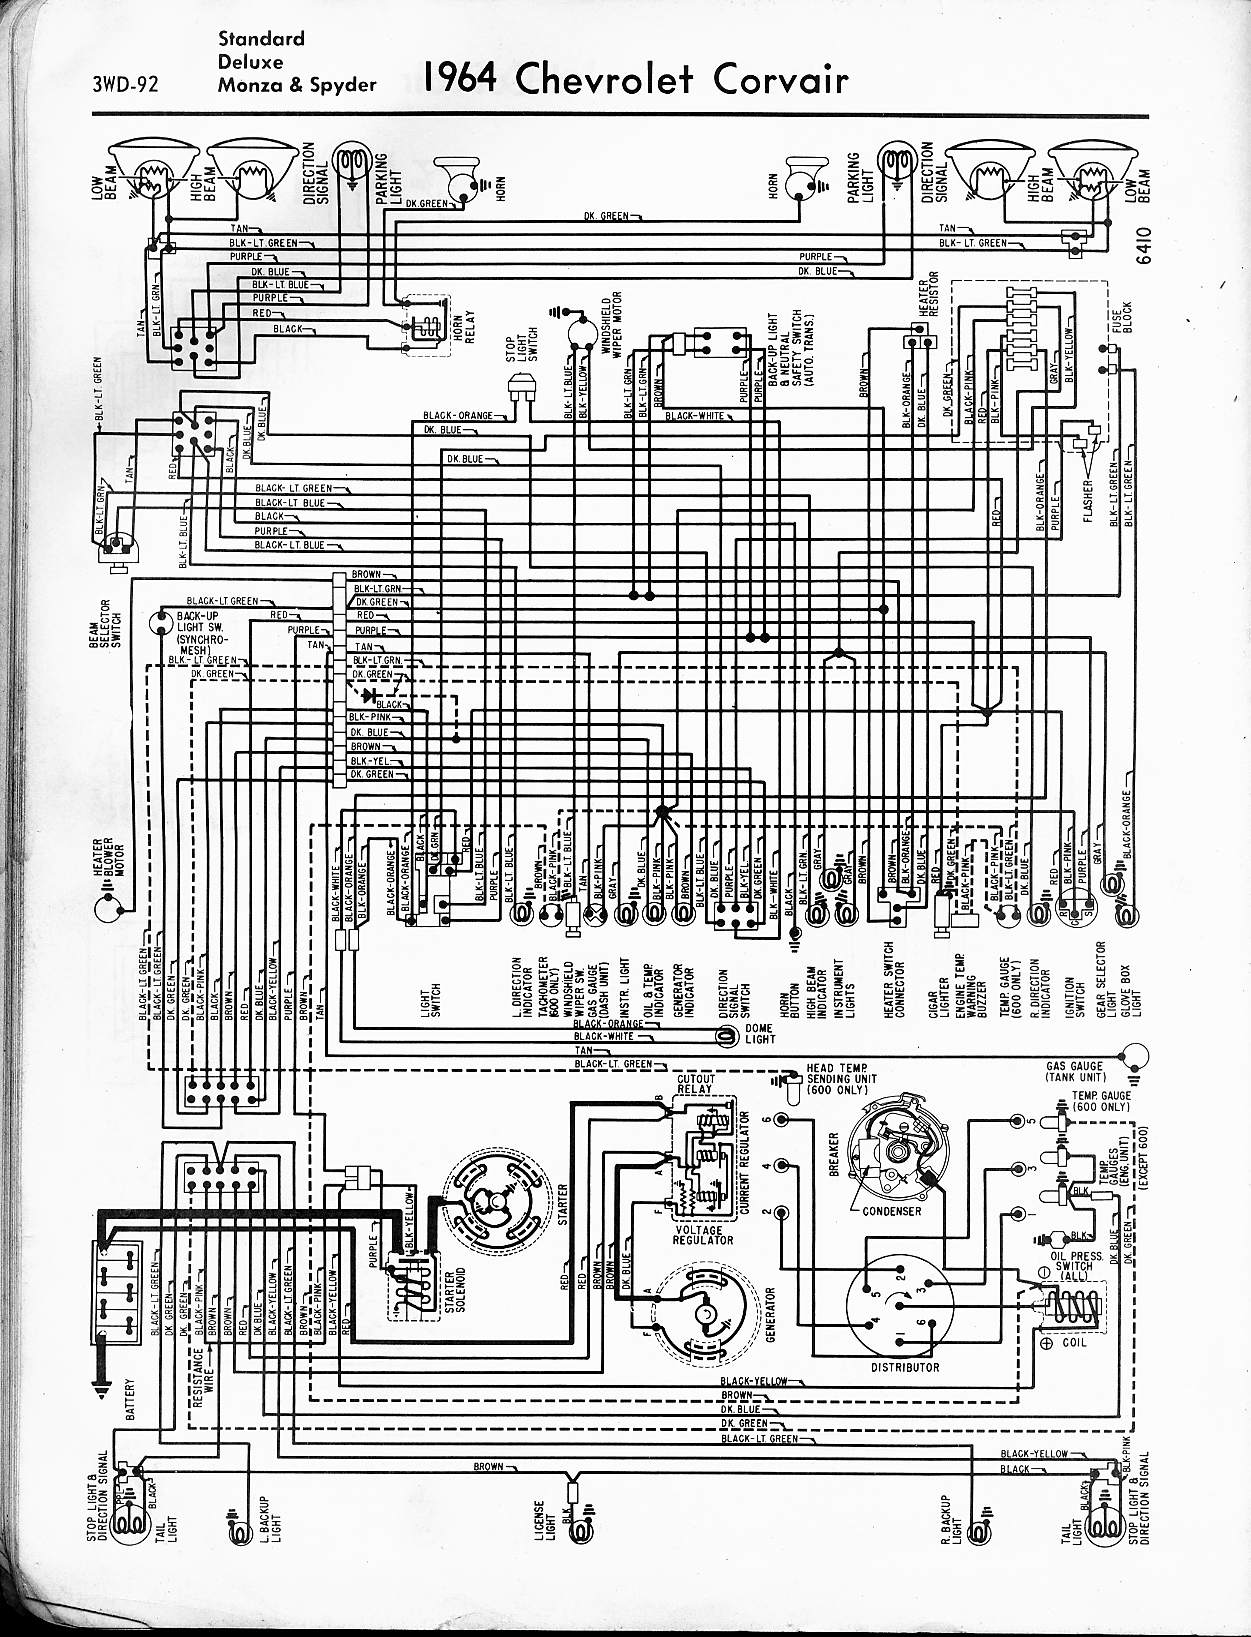 1970 chevrolet c10 wiring diagram of the fuse box 57 65 chevy    wiring    diagrams  57 65 chevy    wiring    diagrams